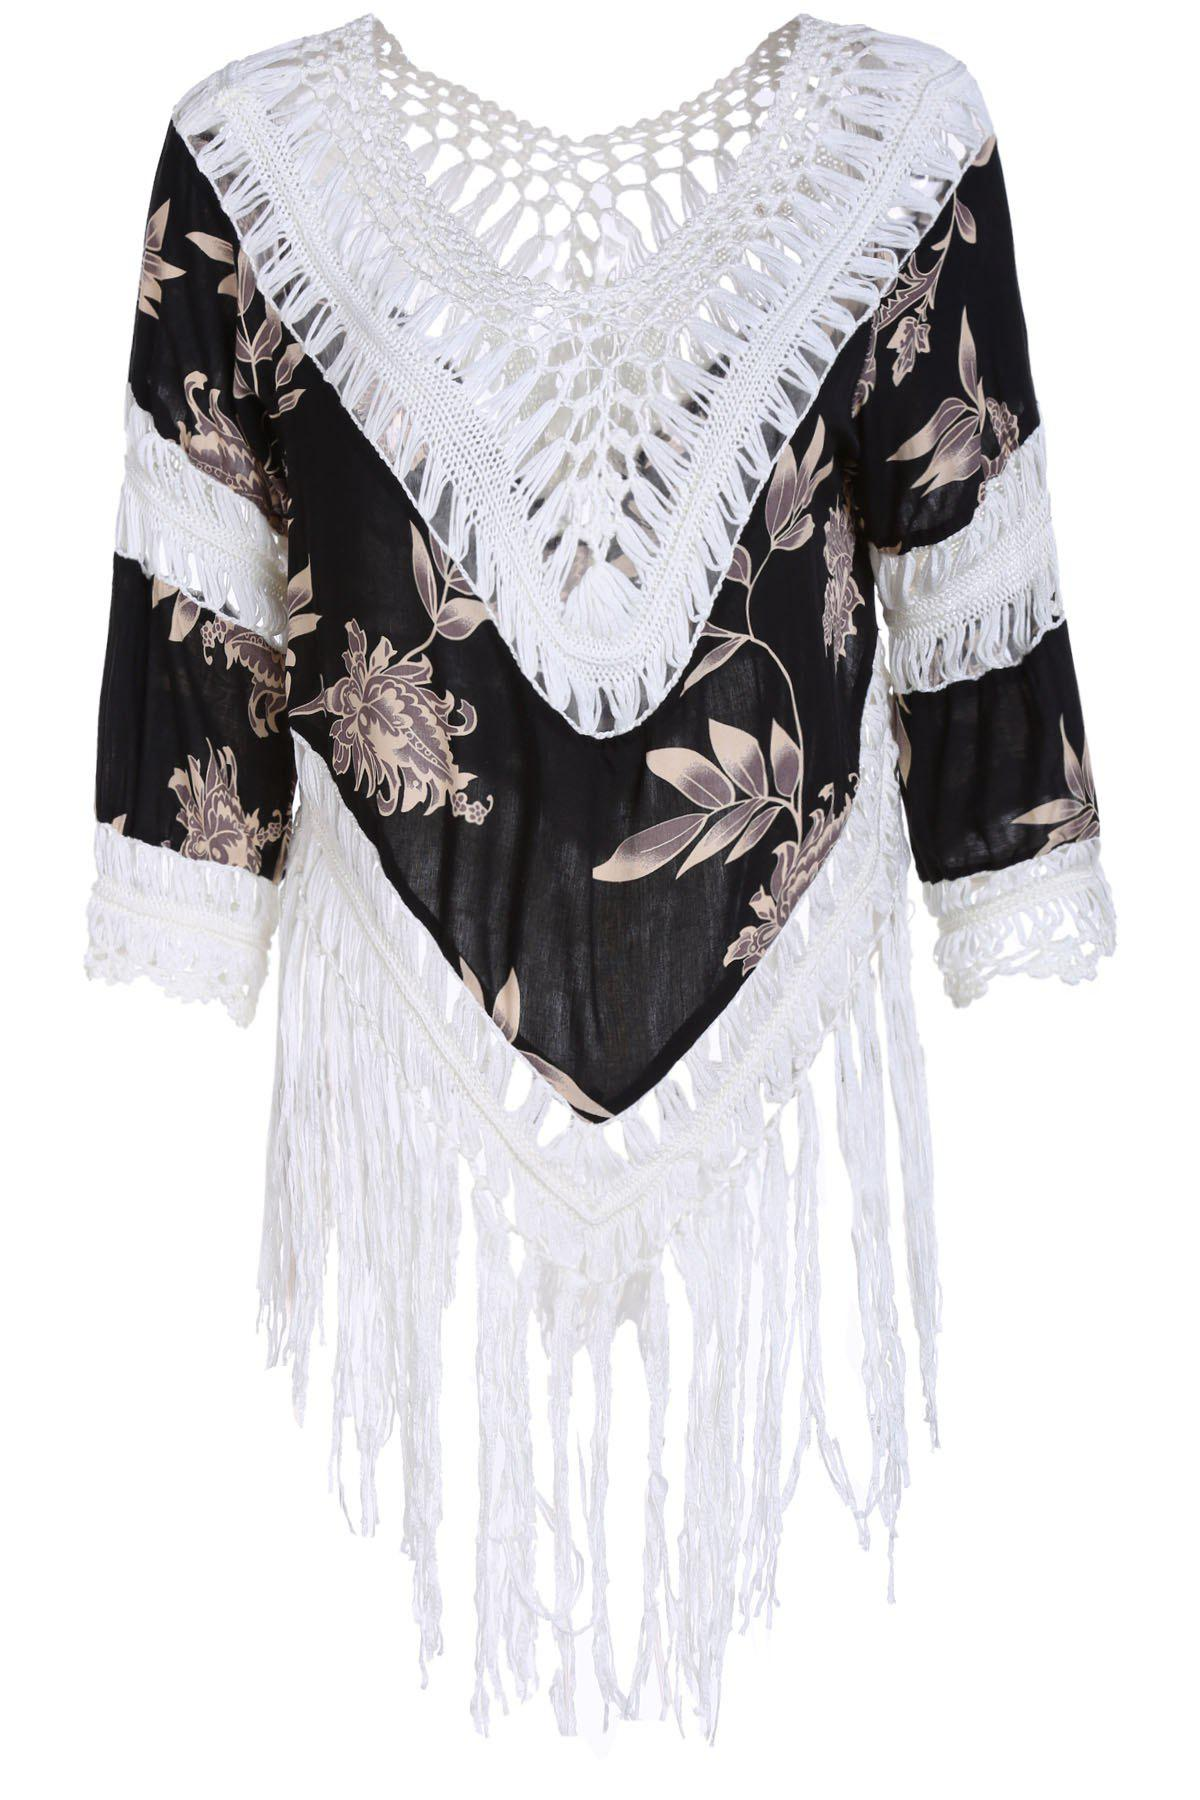 Fashion Hollow Out Printed Tassels Spliced T-Shirt For Women